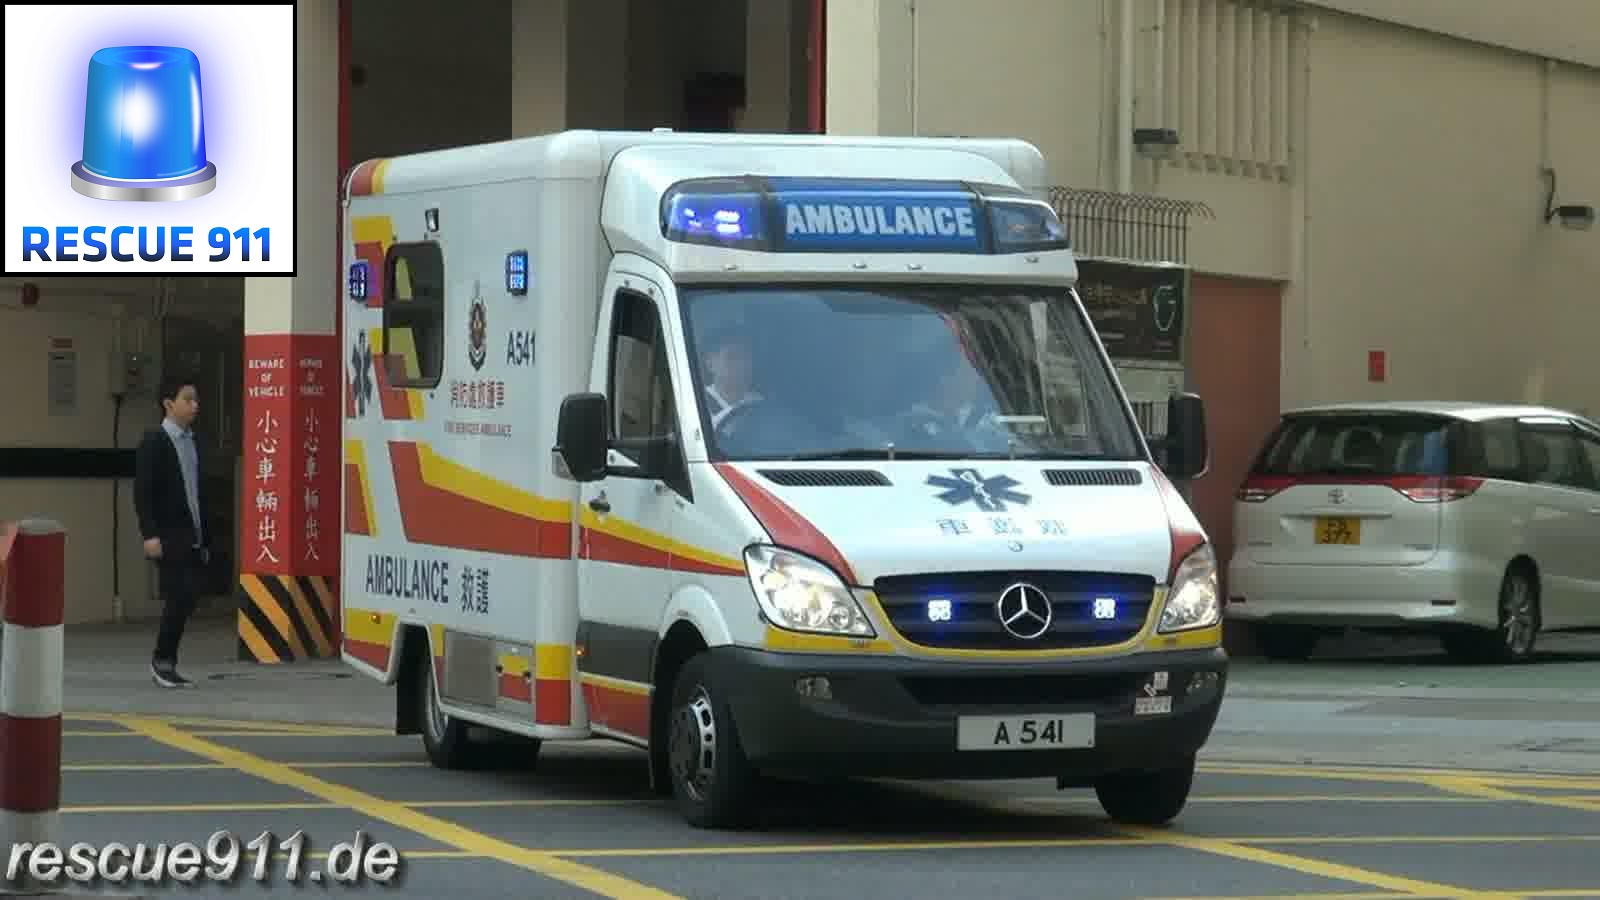 Ambulance HKFSD Yau Ma Tei Ambulance Depot (collection) (stream)